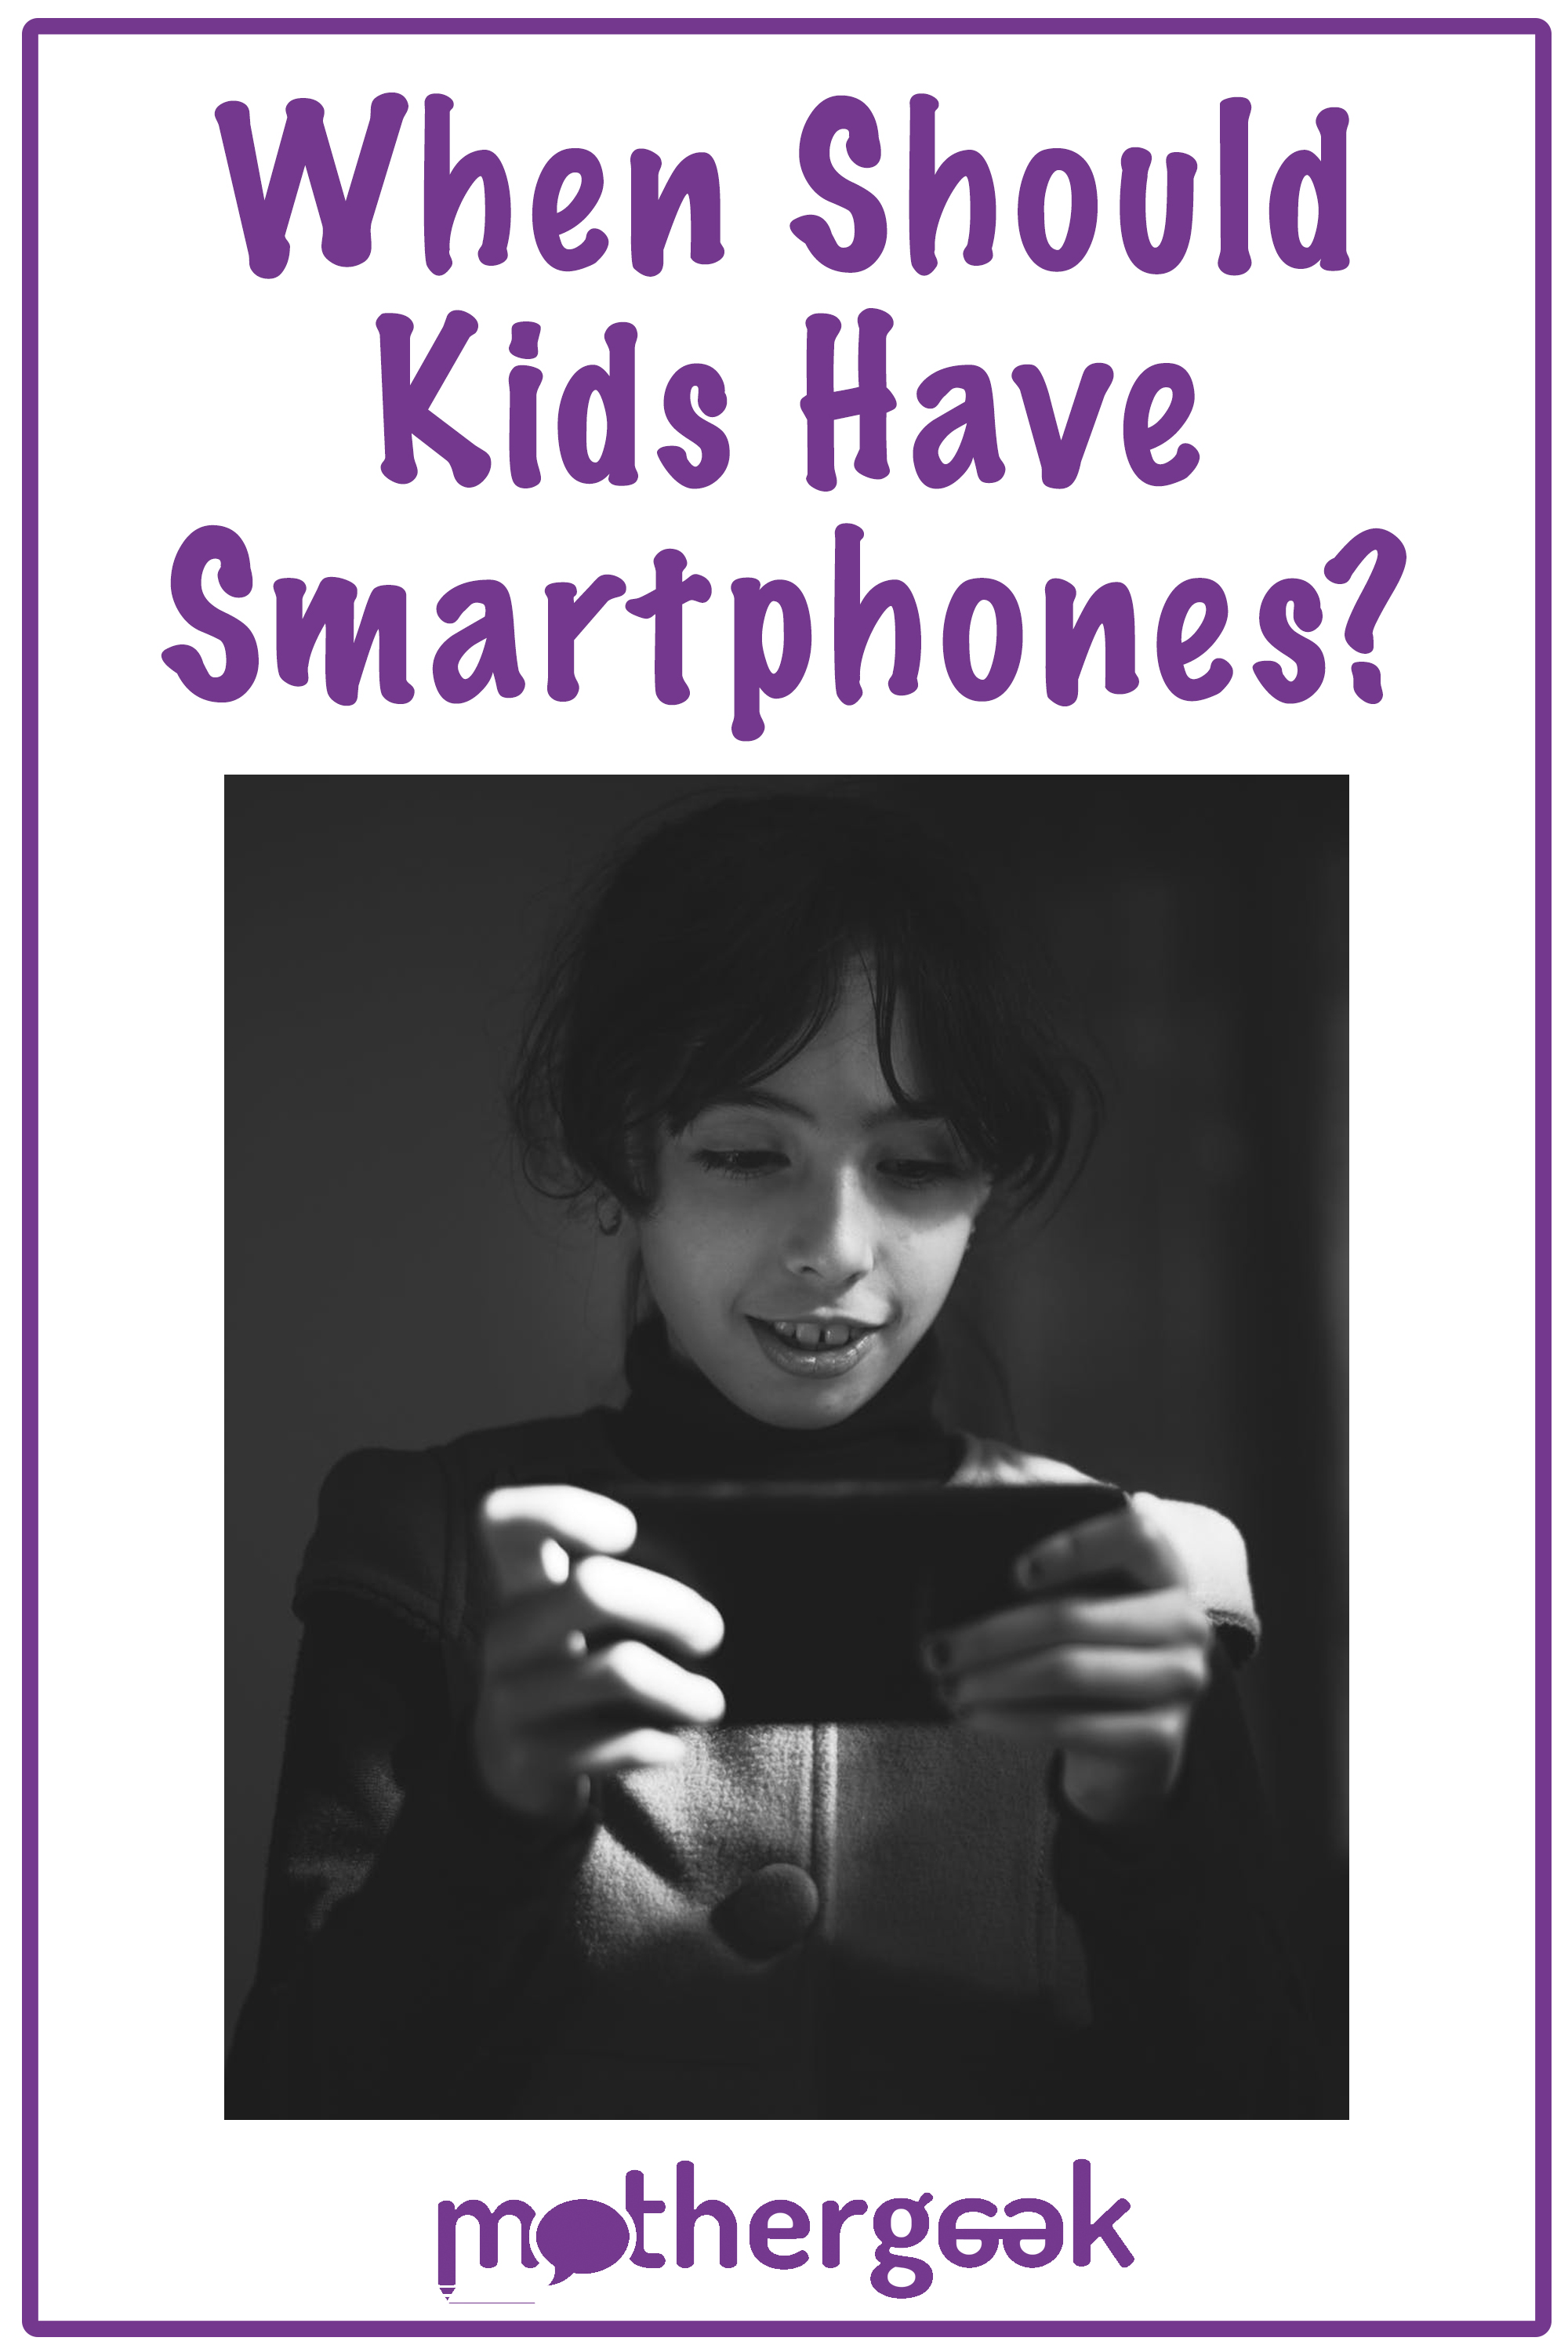 when should kids have smartphones? PIN